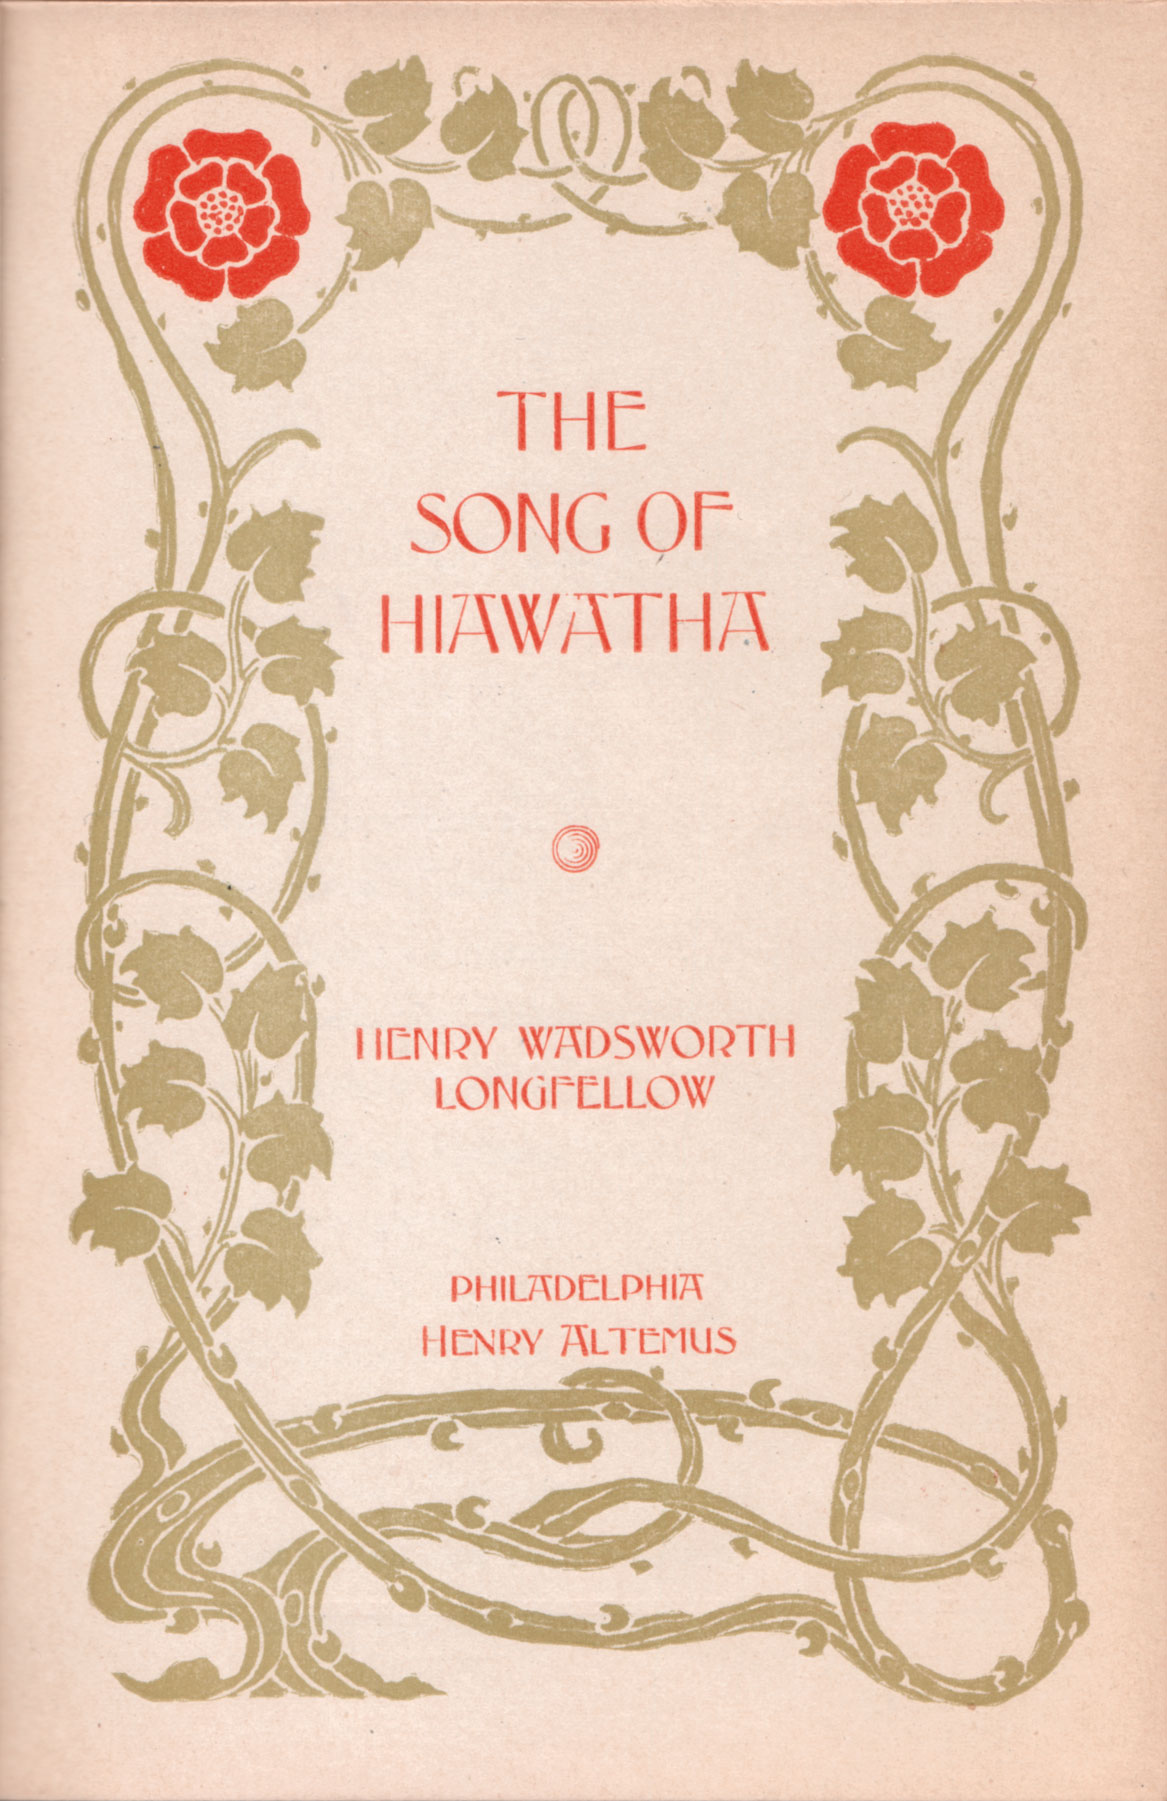 Longfellow always said that the name of the hero of his epic poem was pronounced Hee-a-wa-tha. The author's preference never caught on. But the poem certainly did. A classic of American literature, it had an astonishingly wide readership and innumerable printings. This edition (top) appeared 40 years after its original publication.